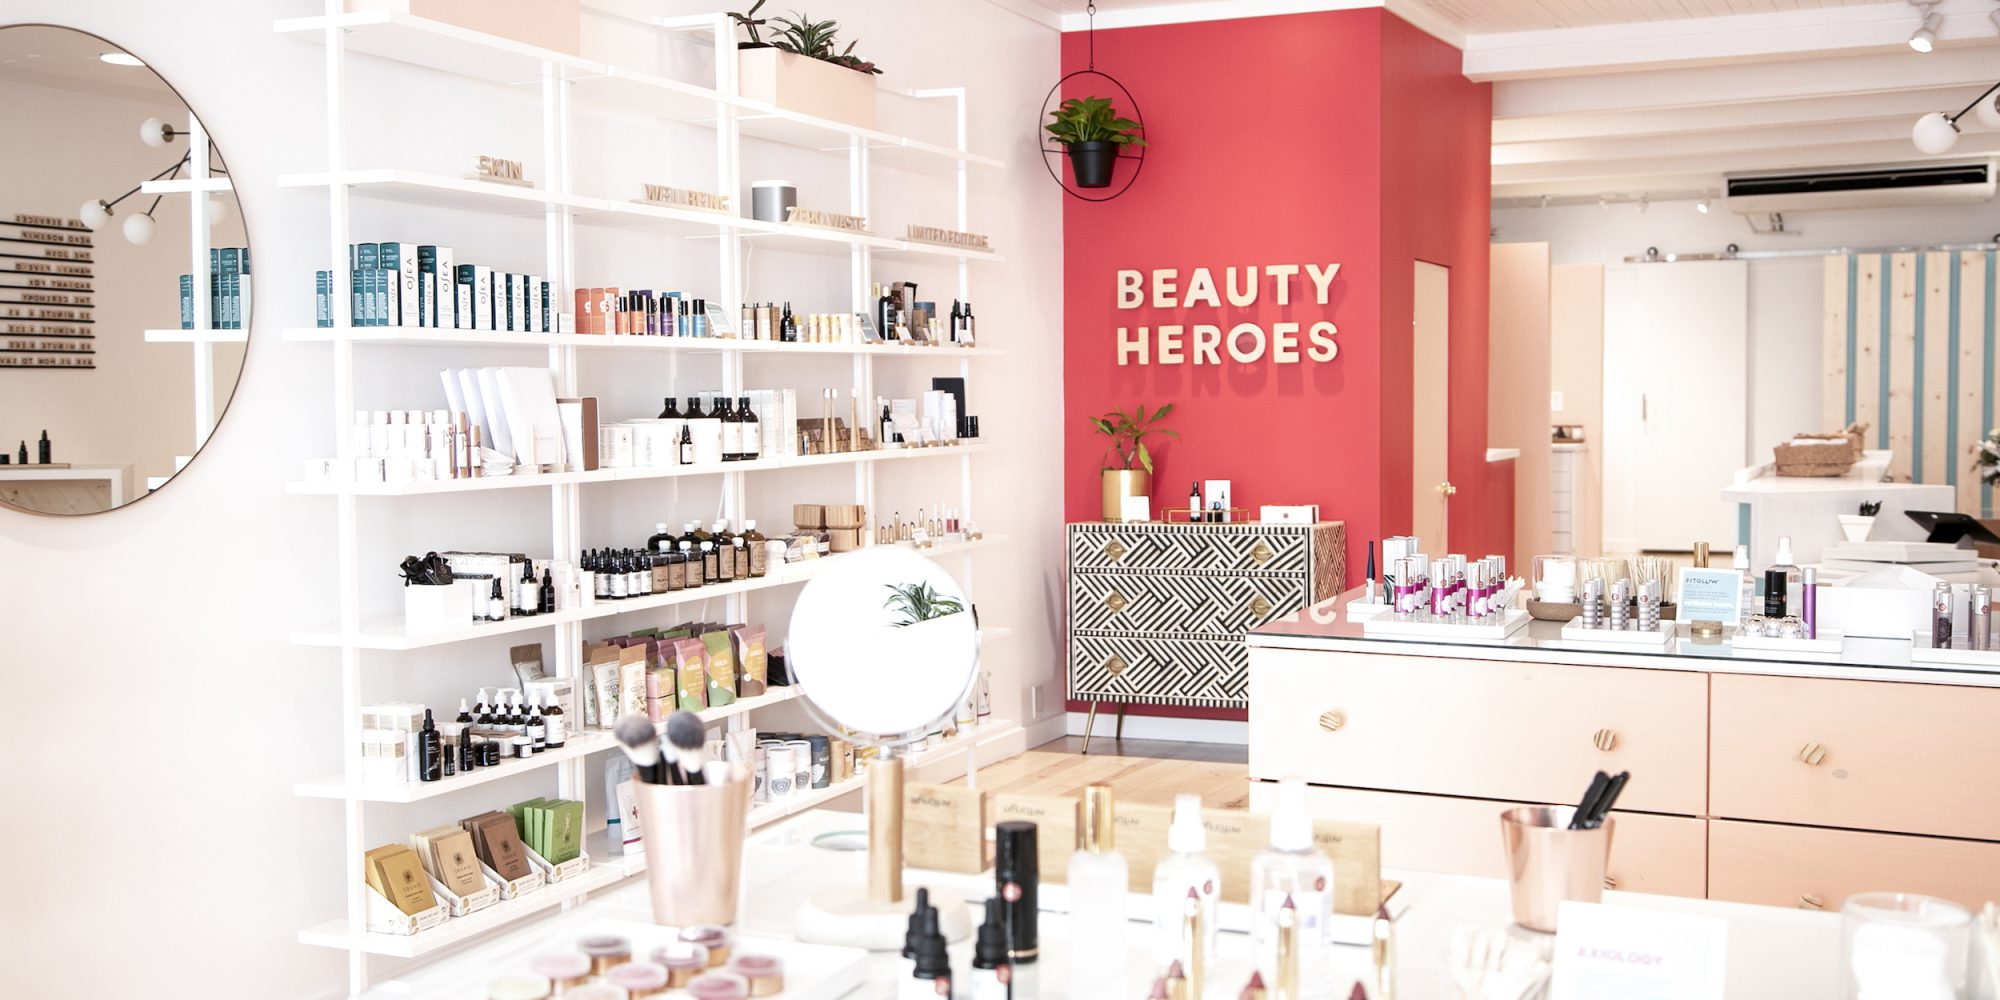 Beauty Heroes Brings Its Product Curation Capabilities To A New Northern California Store